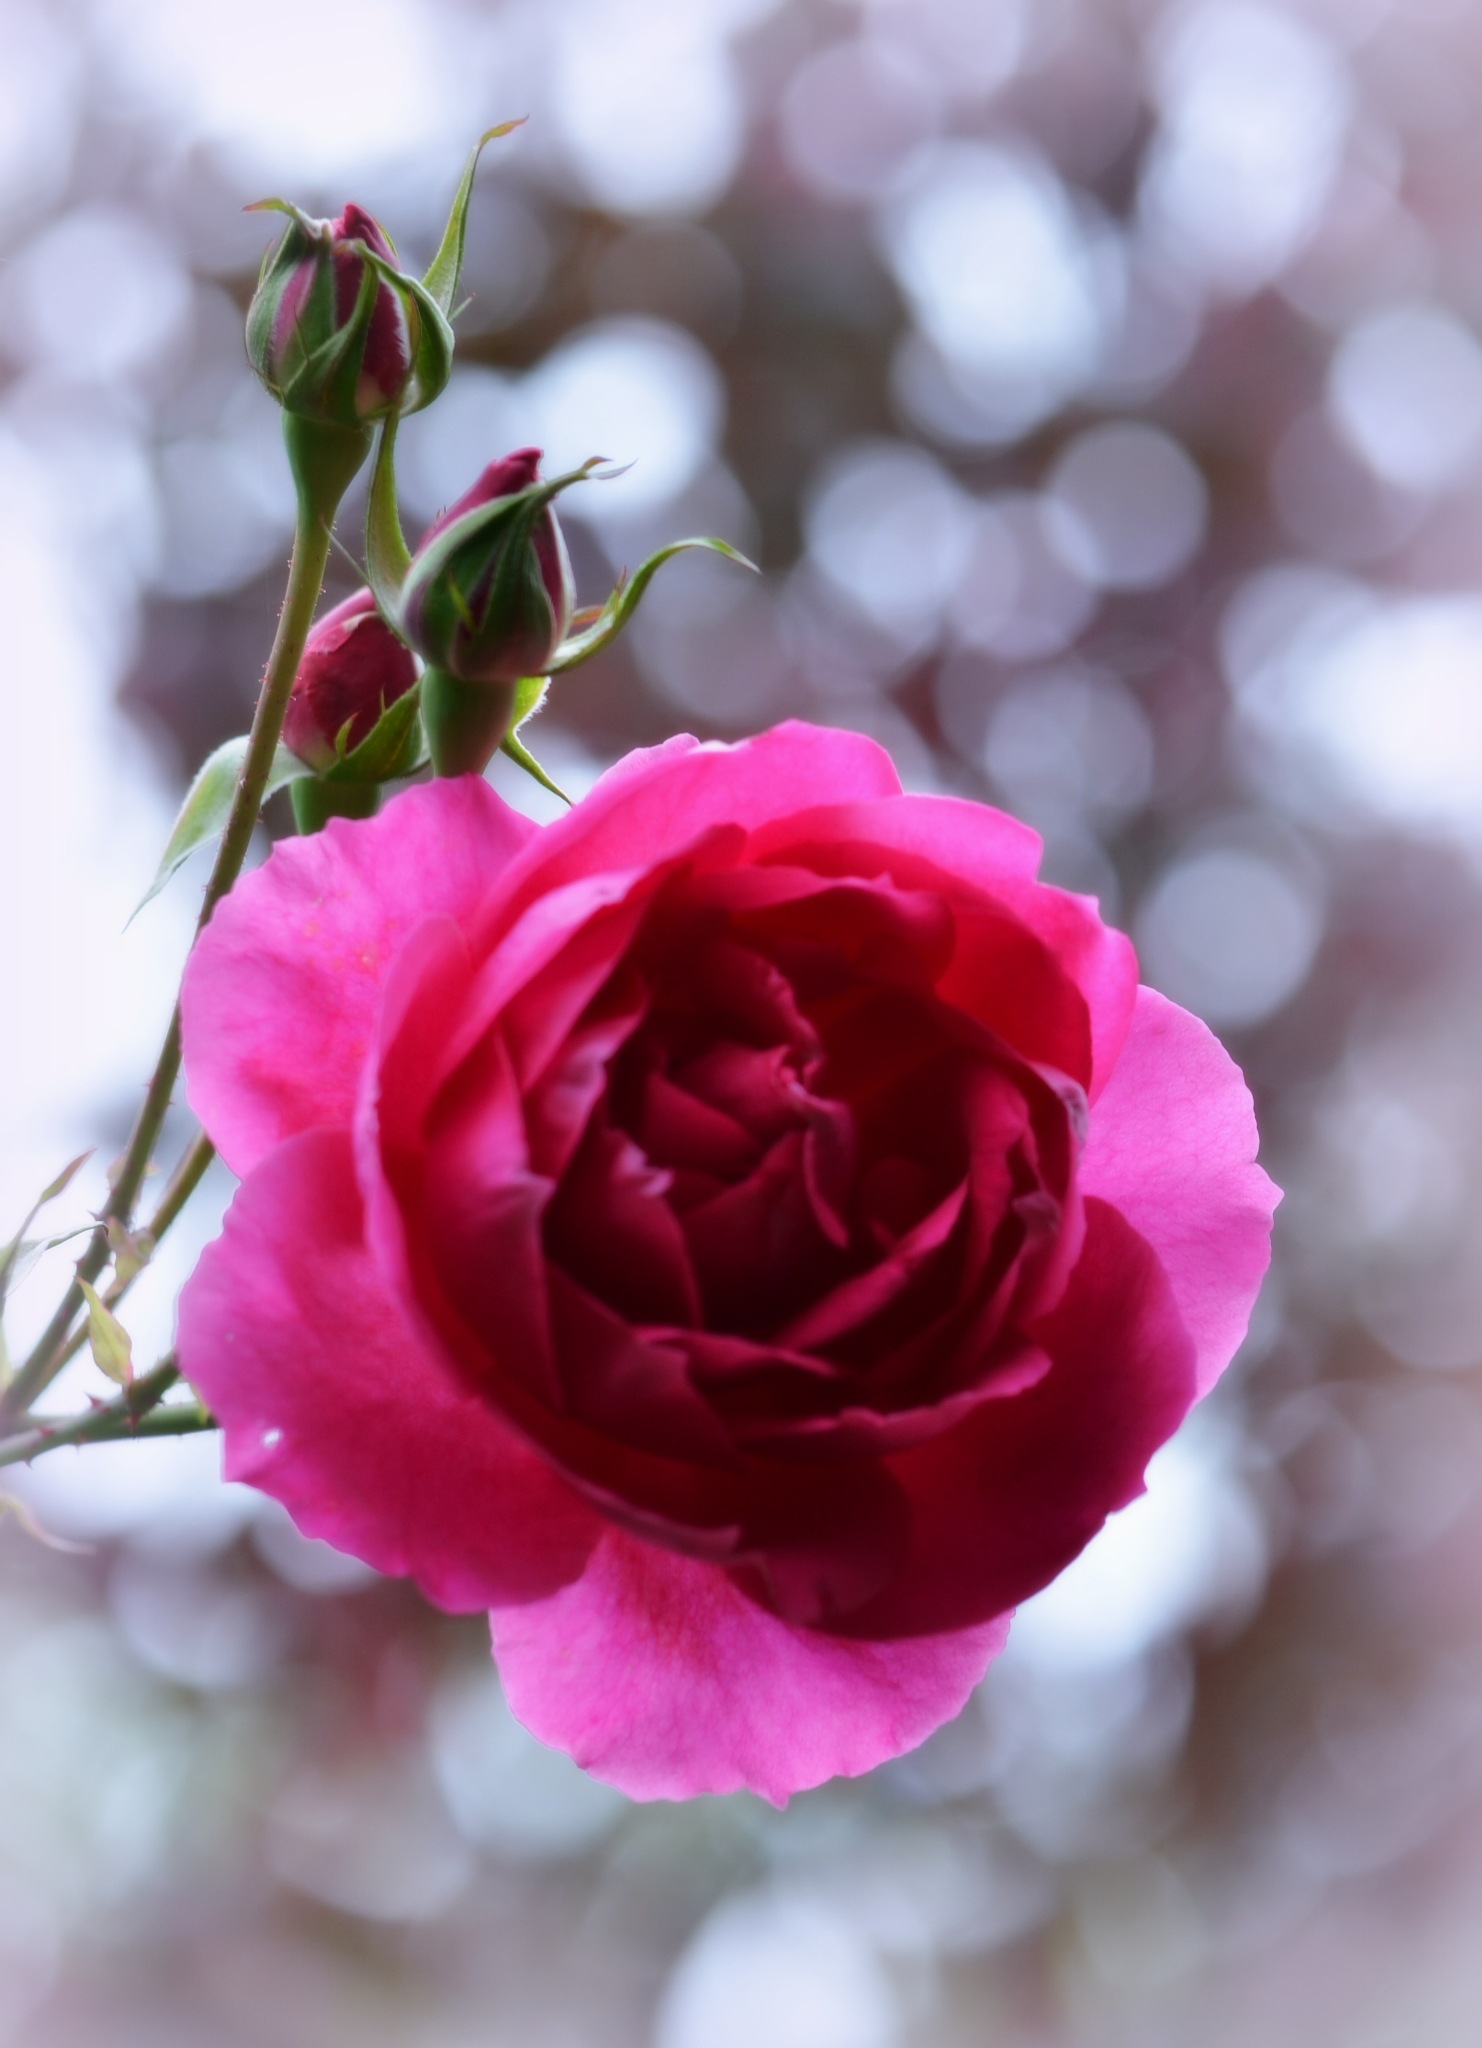 Rose bokeh by Sarah Fox